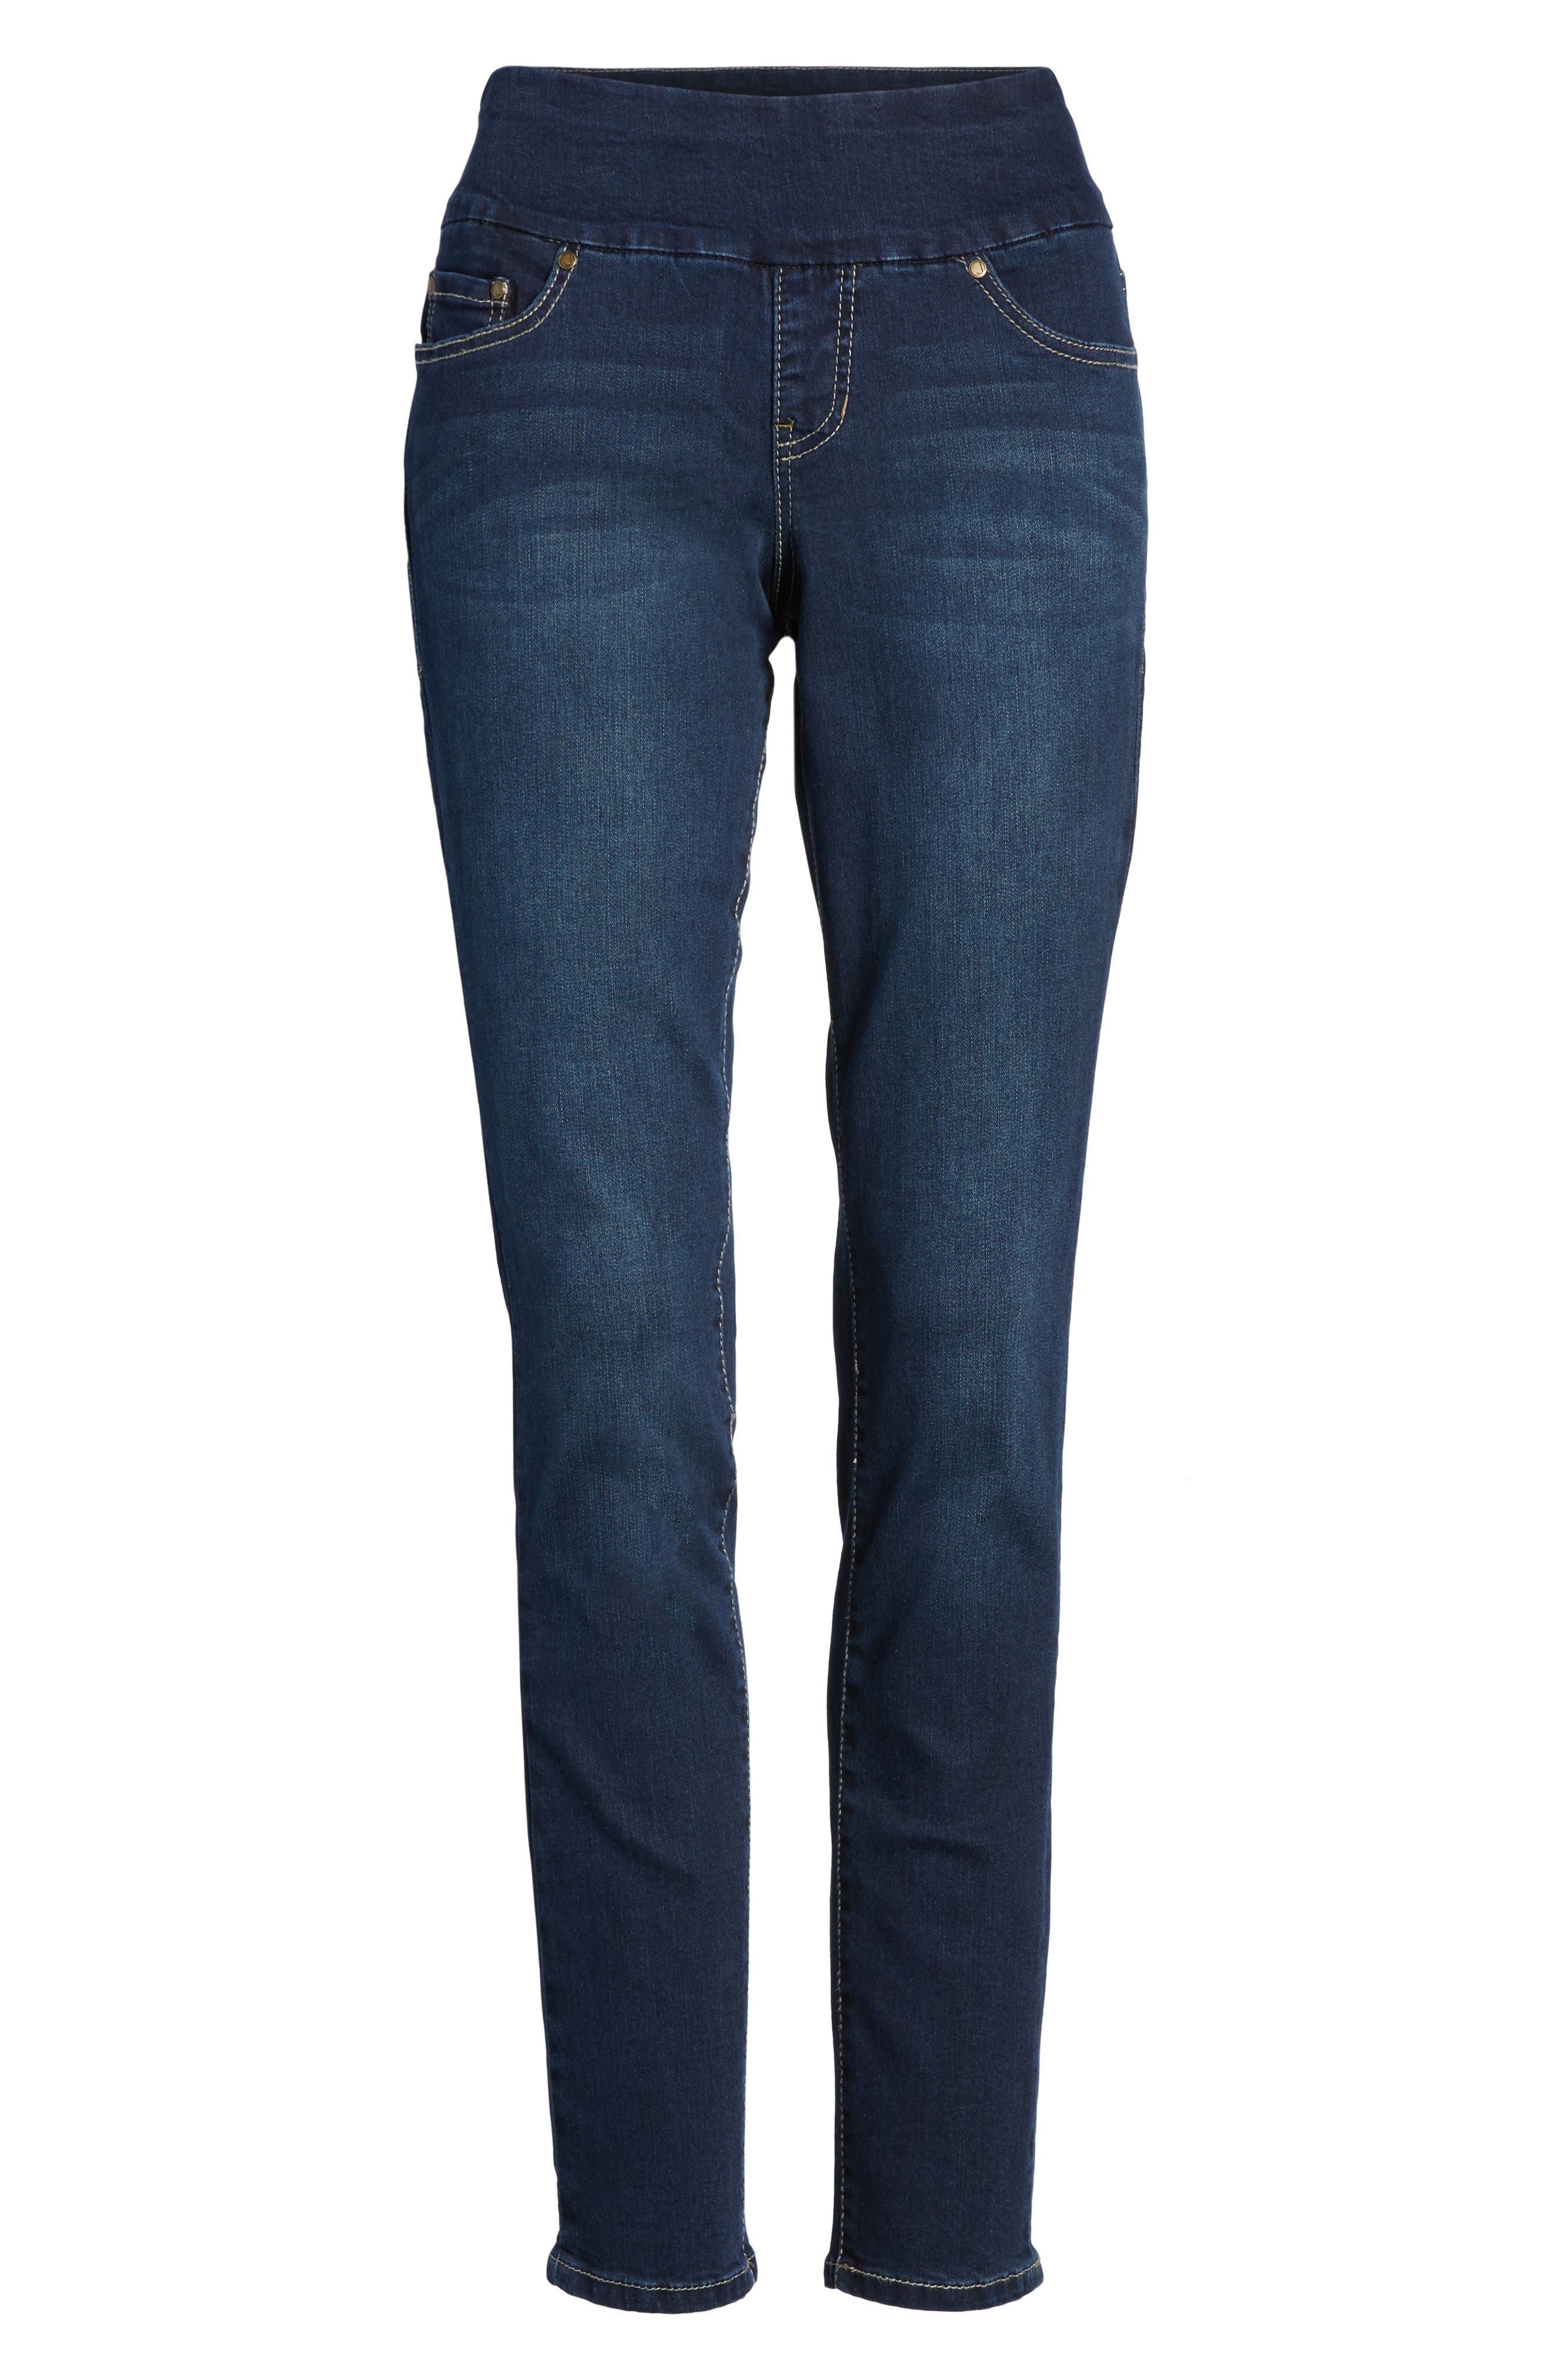 Nora Stretch Skinny Jeans,                             Alternate thumbnail 6, color,                             DARK INDIGO